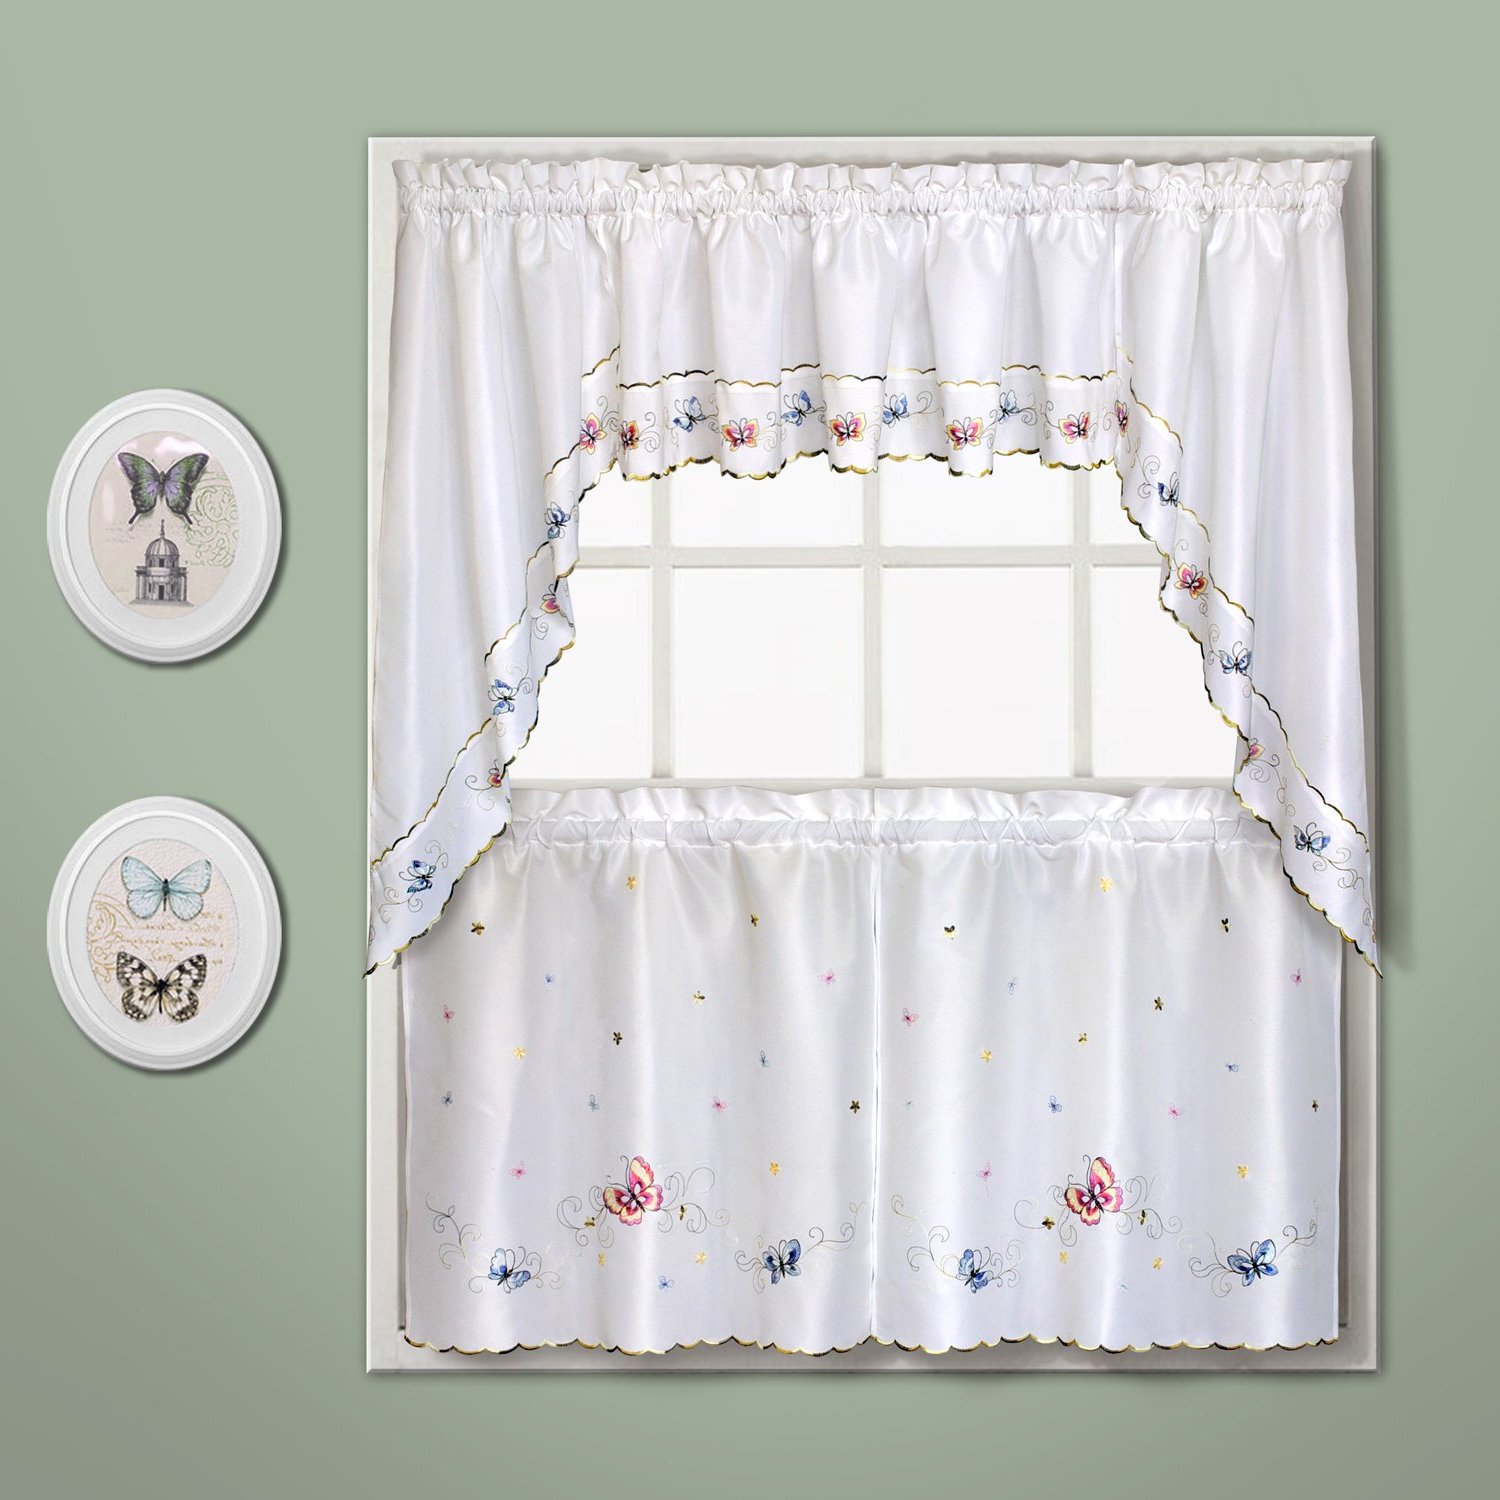 """United Curtain Butterfly Embroidered Valance, 52"""" X 14"""", Multi In Well Liked Fluttering Butterfly White Embroidered Tier, Swag, Or Valance Kitchen Curtains (View 4 of 20)"""